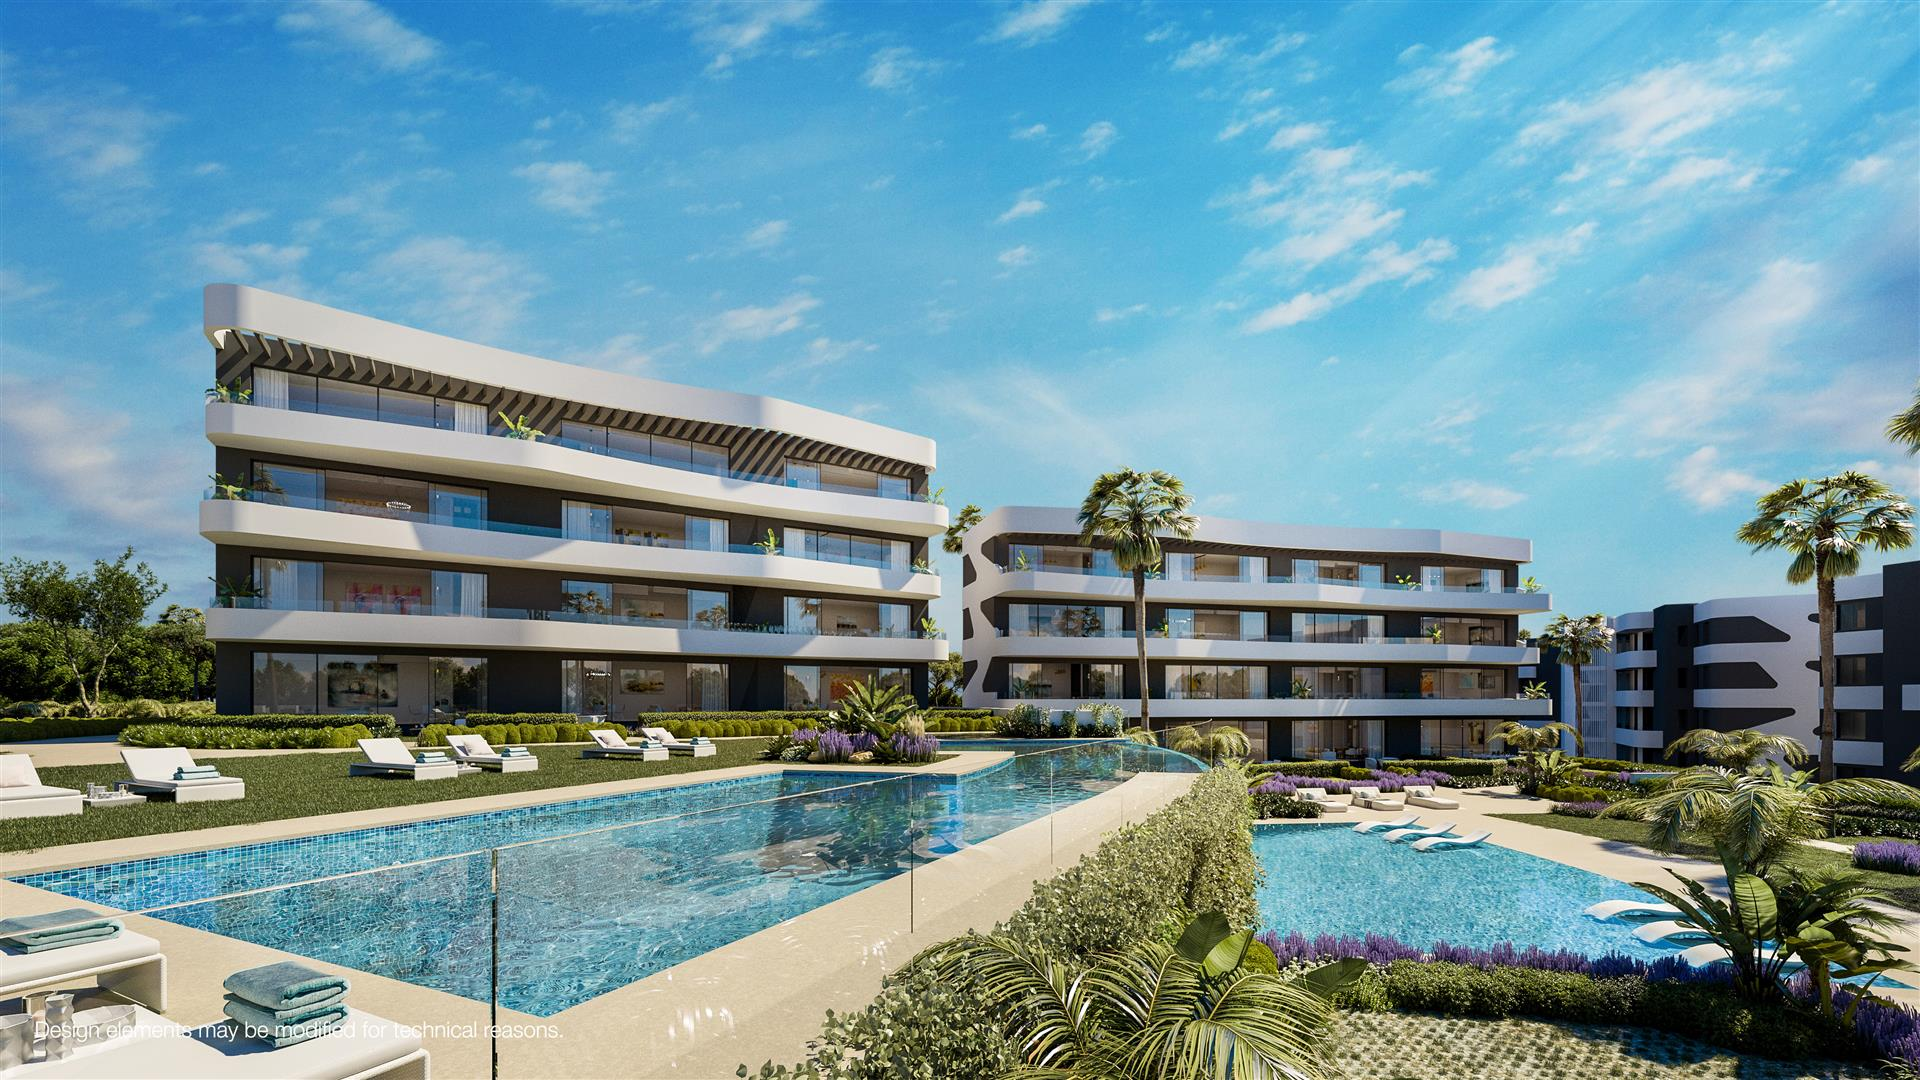 Apartment for Sale in Higueron West Phase 9